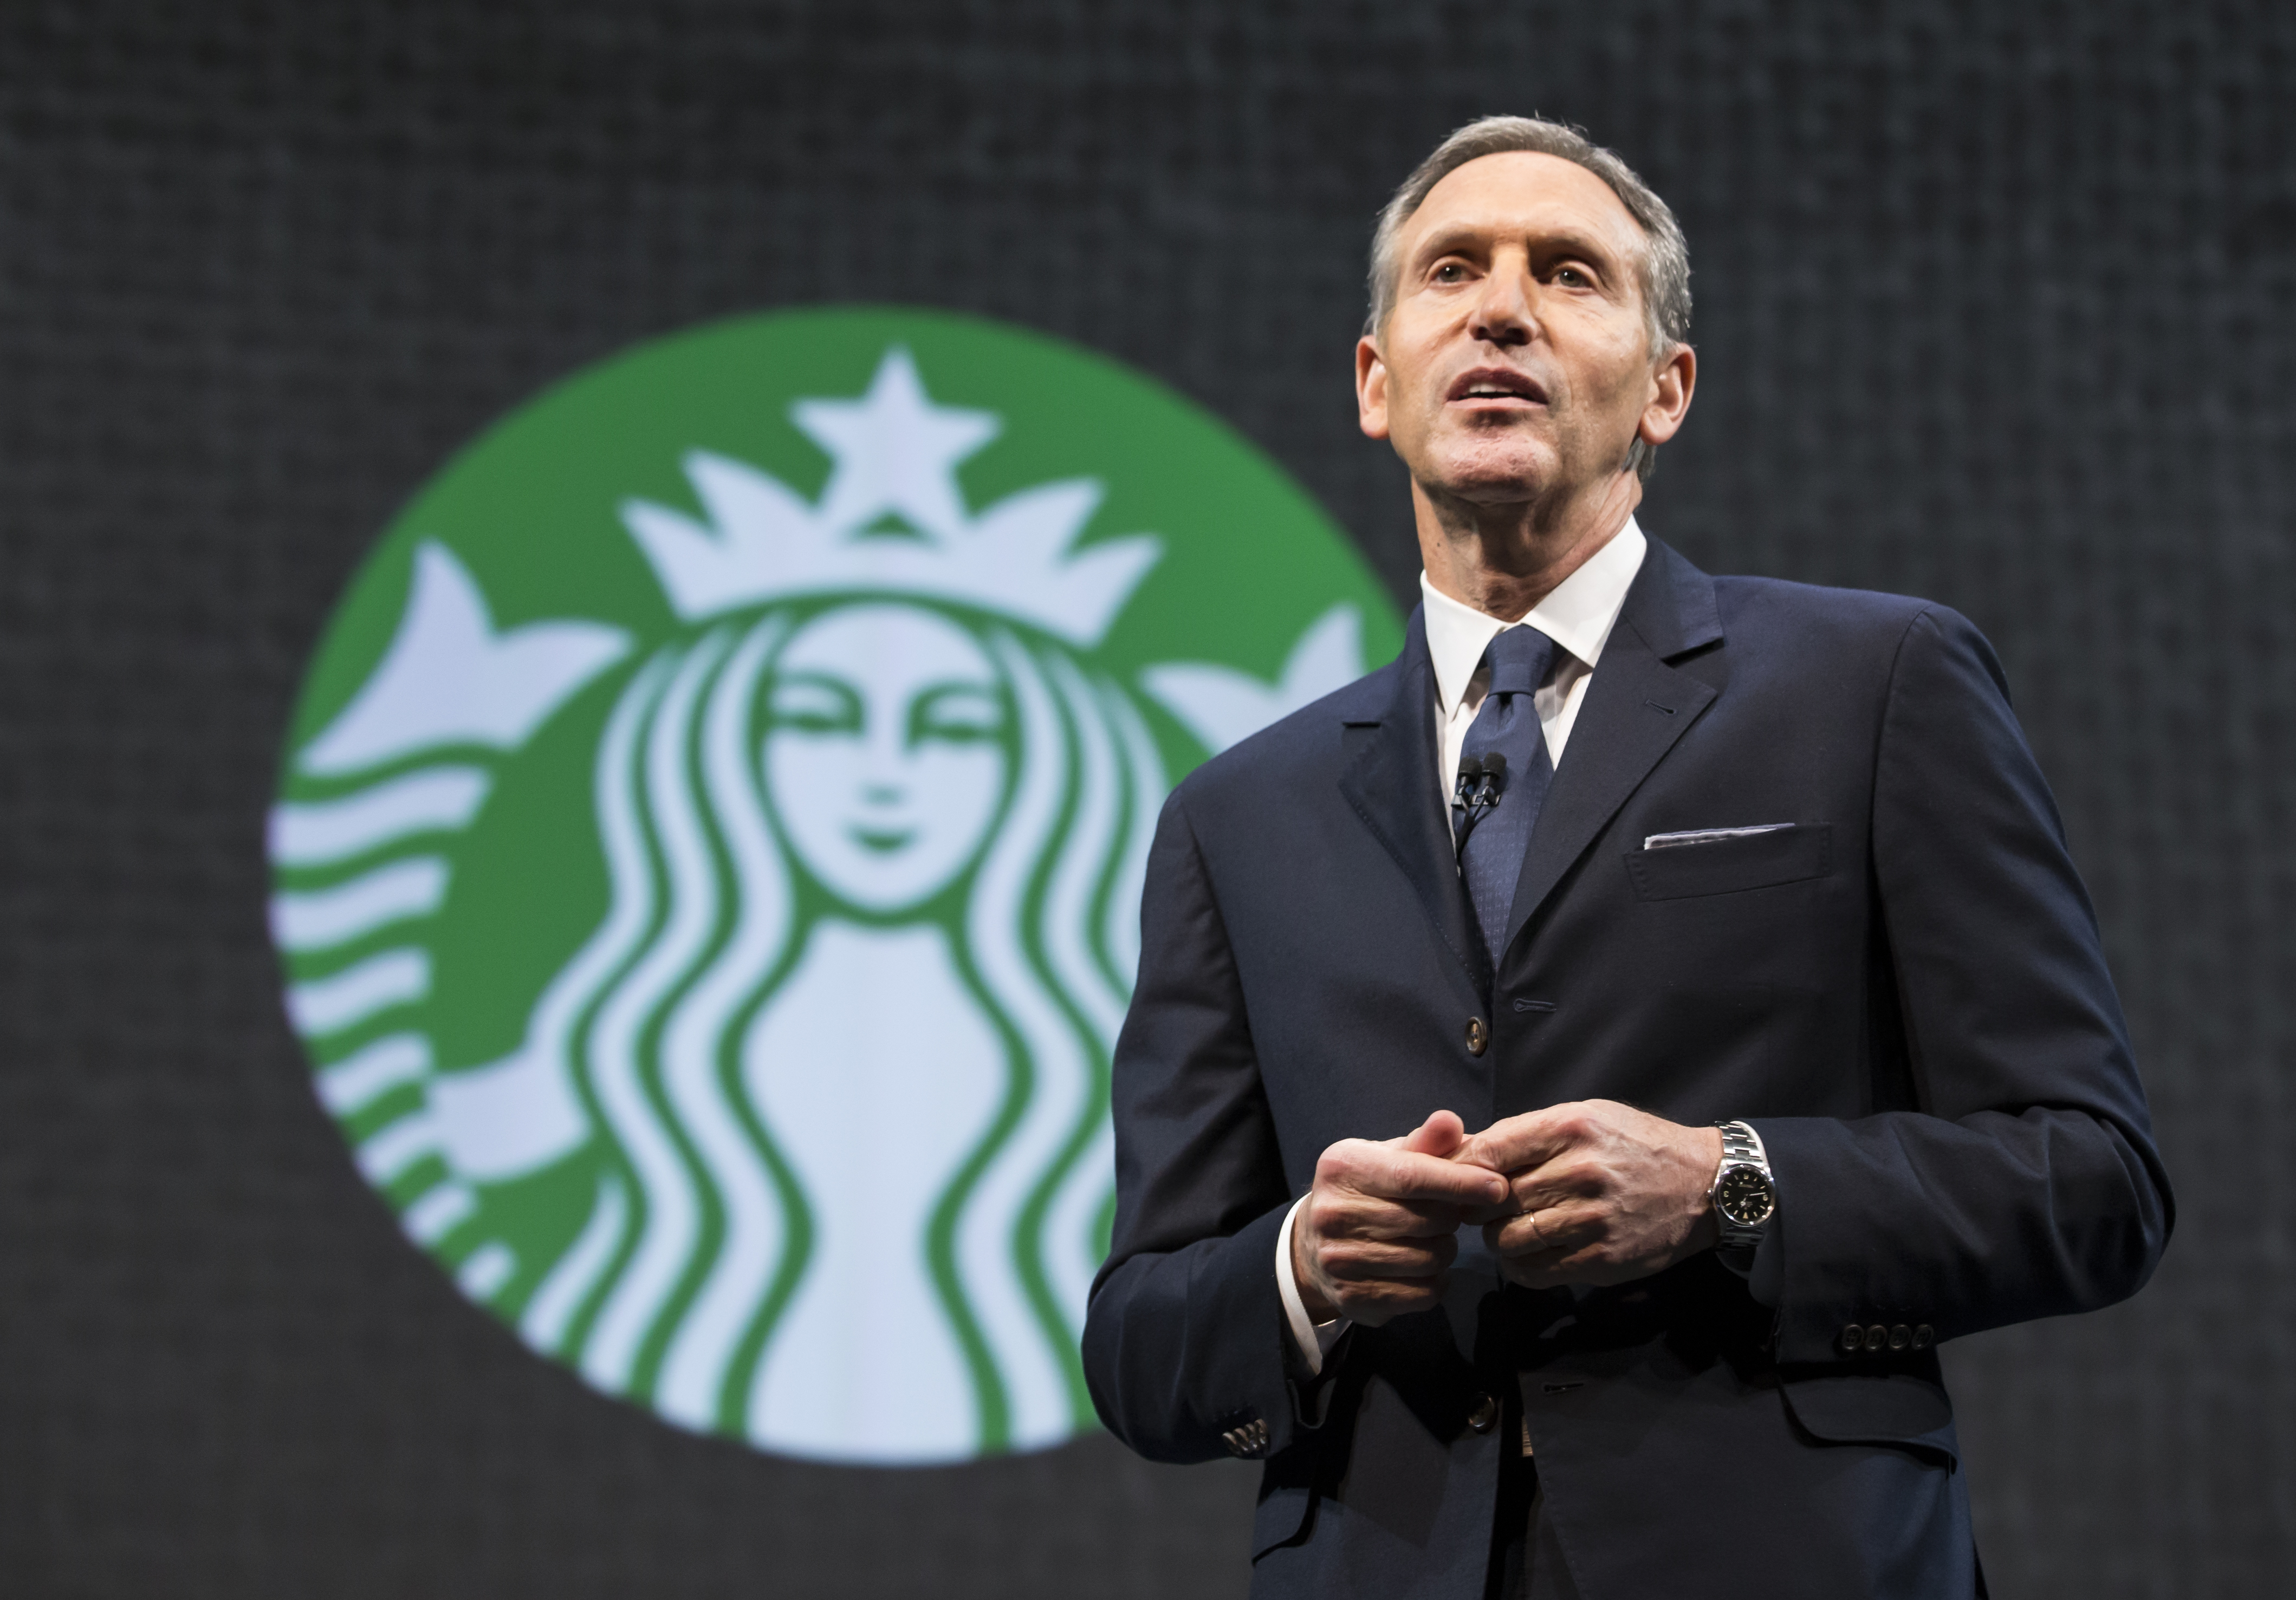 Starbucks Chairman and CEO Howard Schultz speaks during Starbucks' annual shareholders meeting on March 18, 2015 in Seattle.